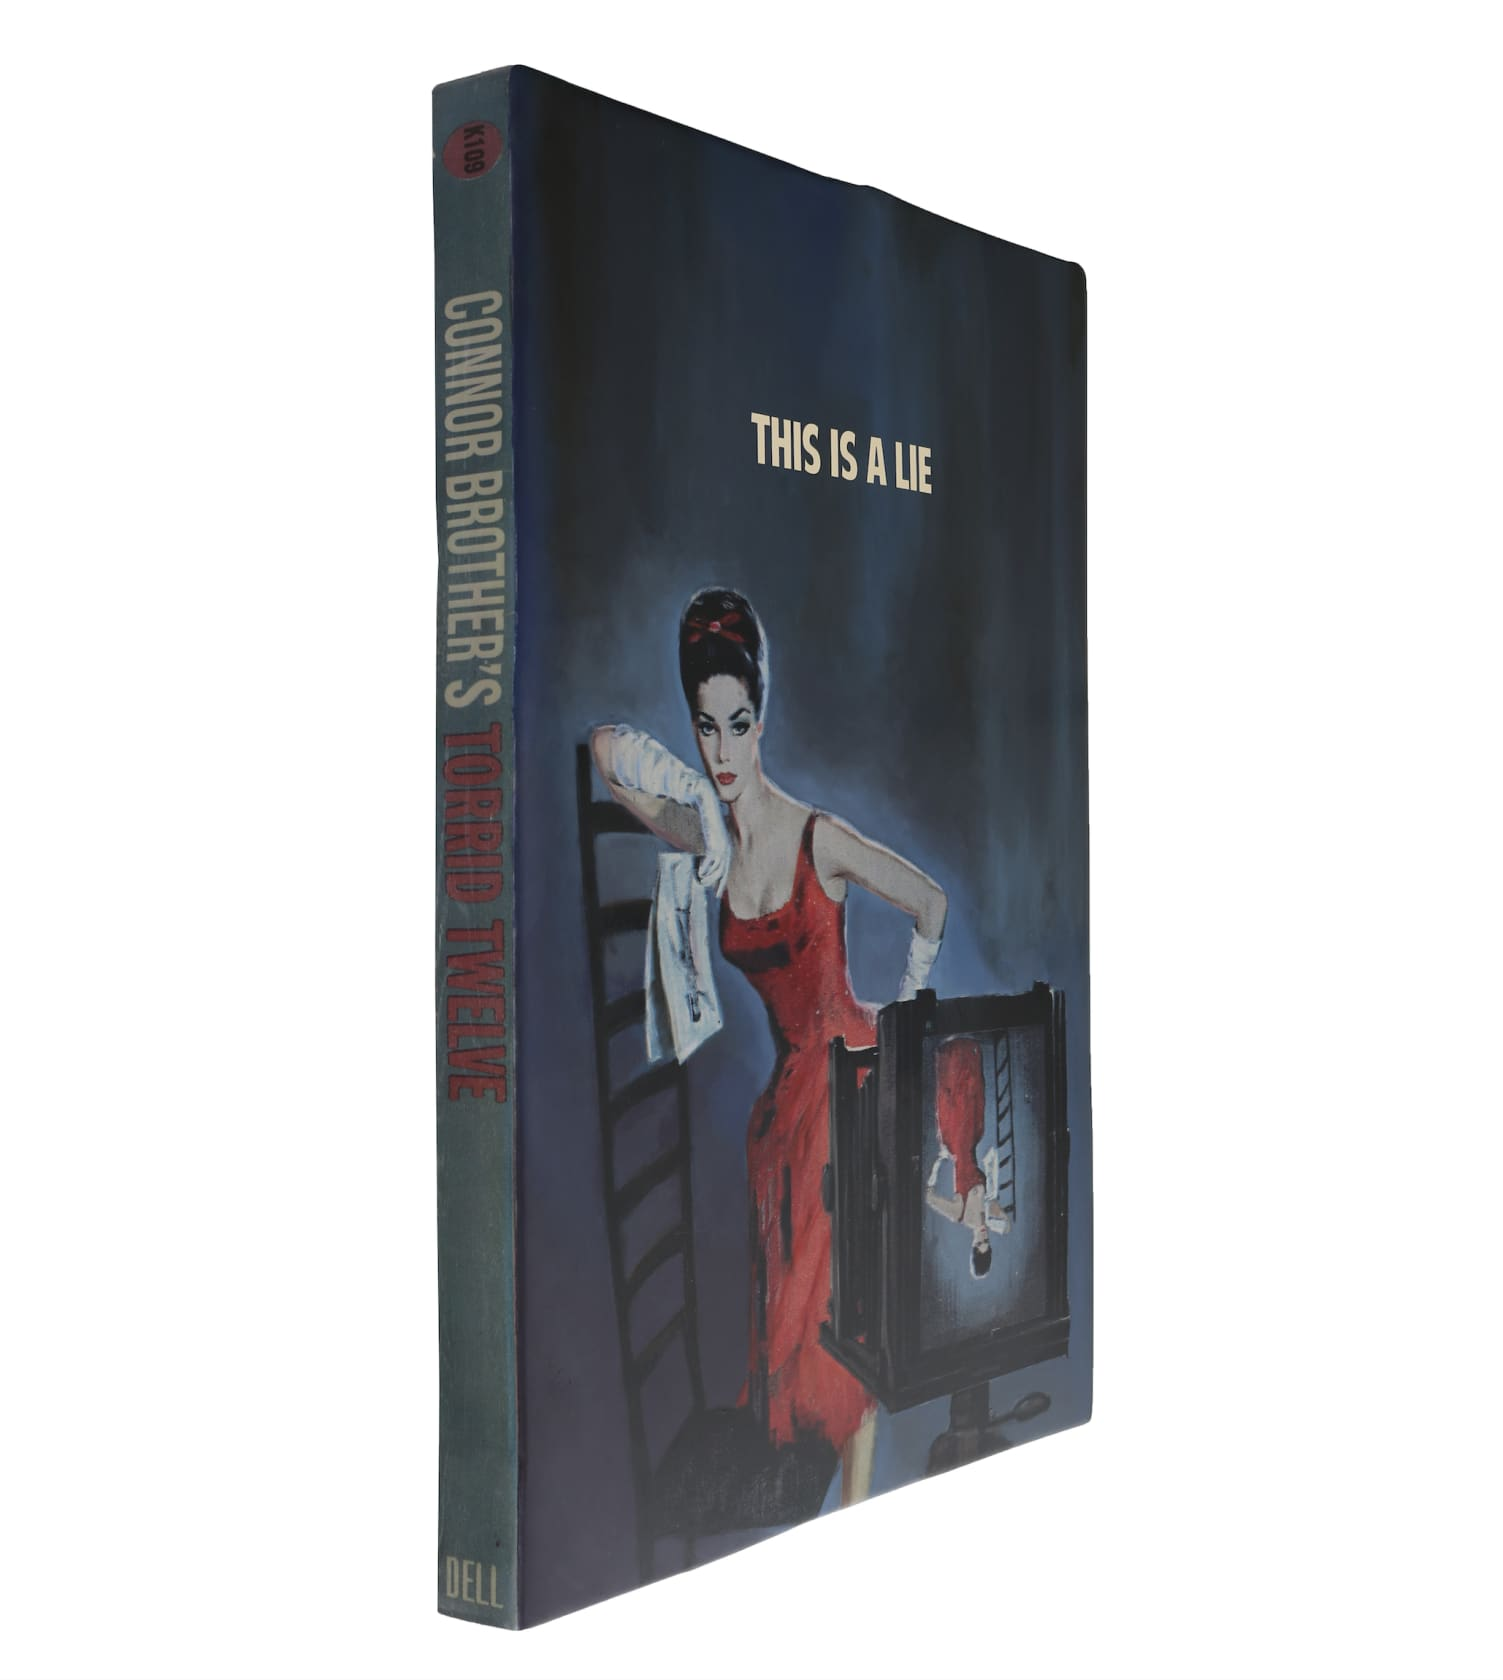 the connor brothers This Is A Lie Hand painted wooden book with silkscreen